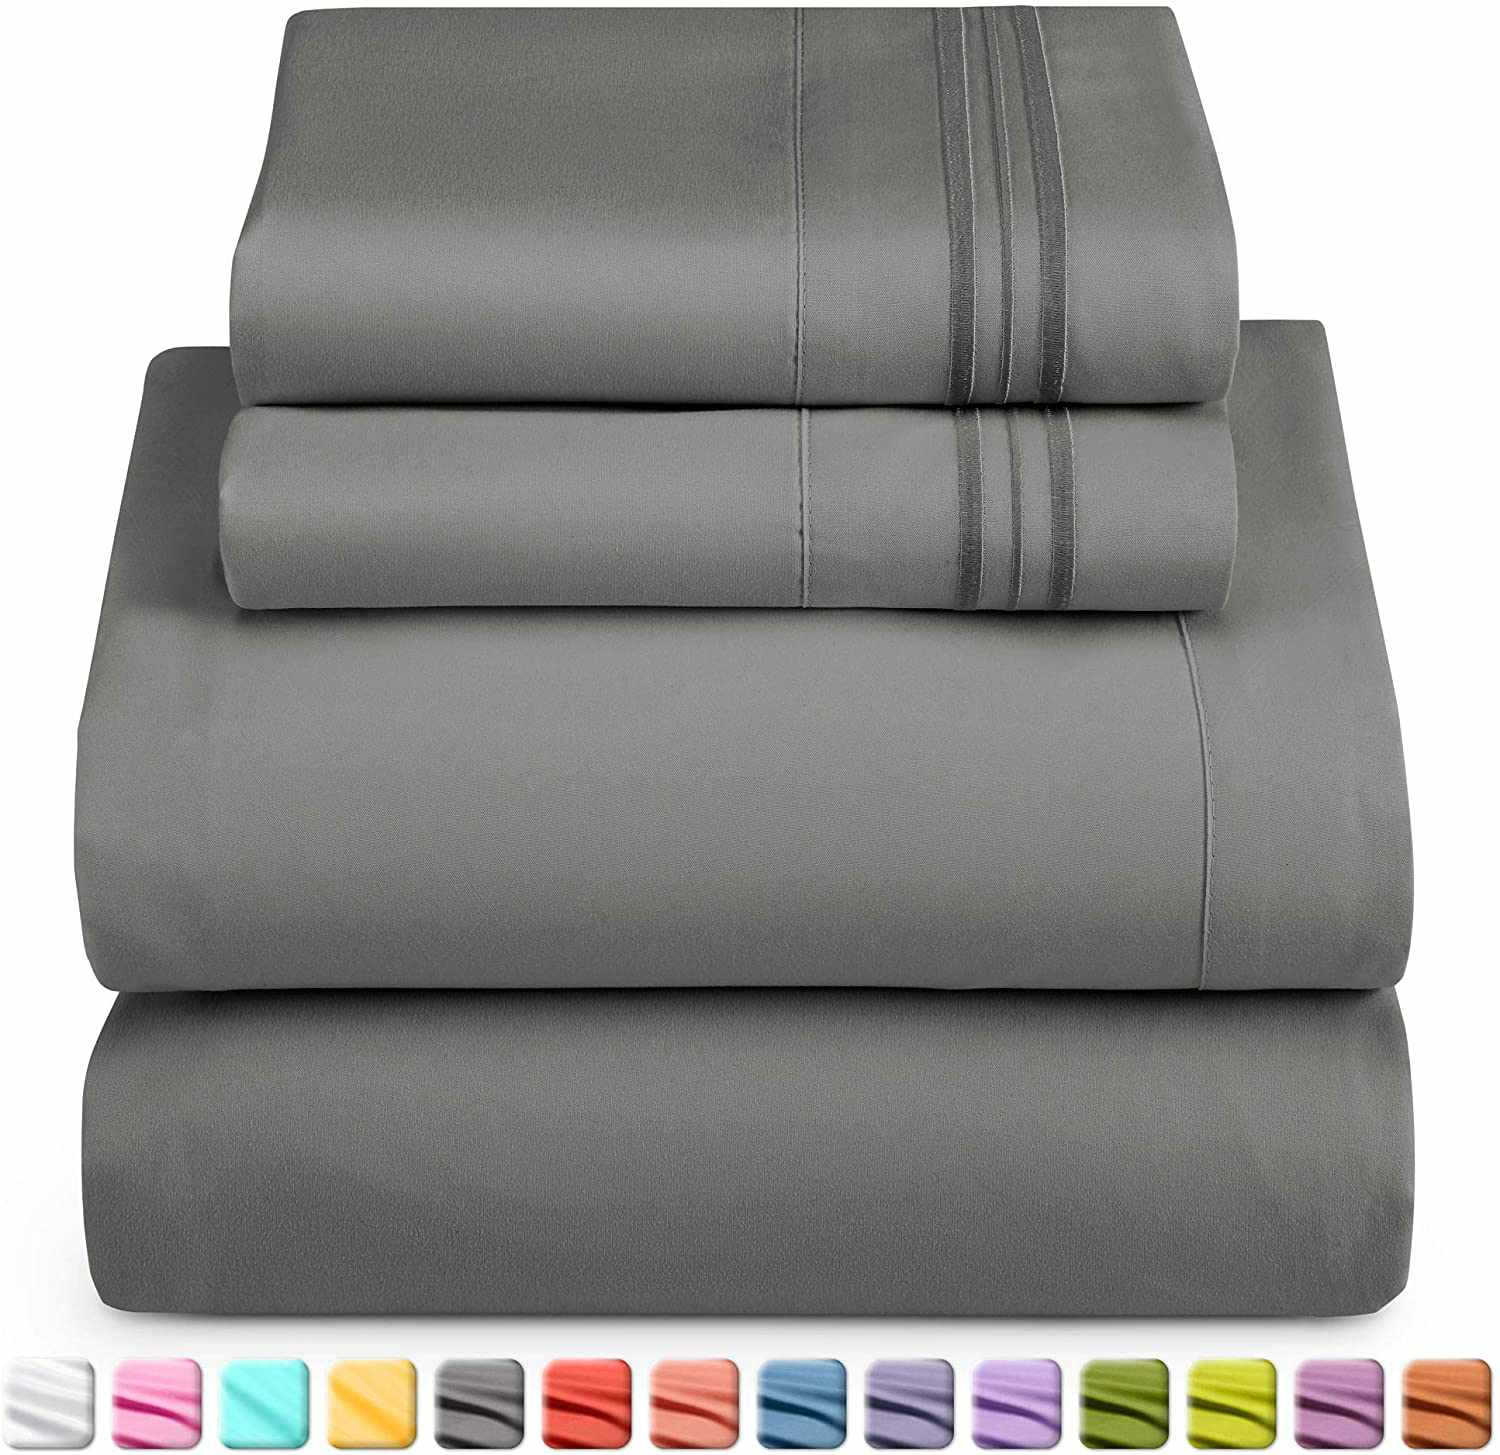 Nestl Bedding Queen Size Bed Sheets Set